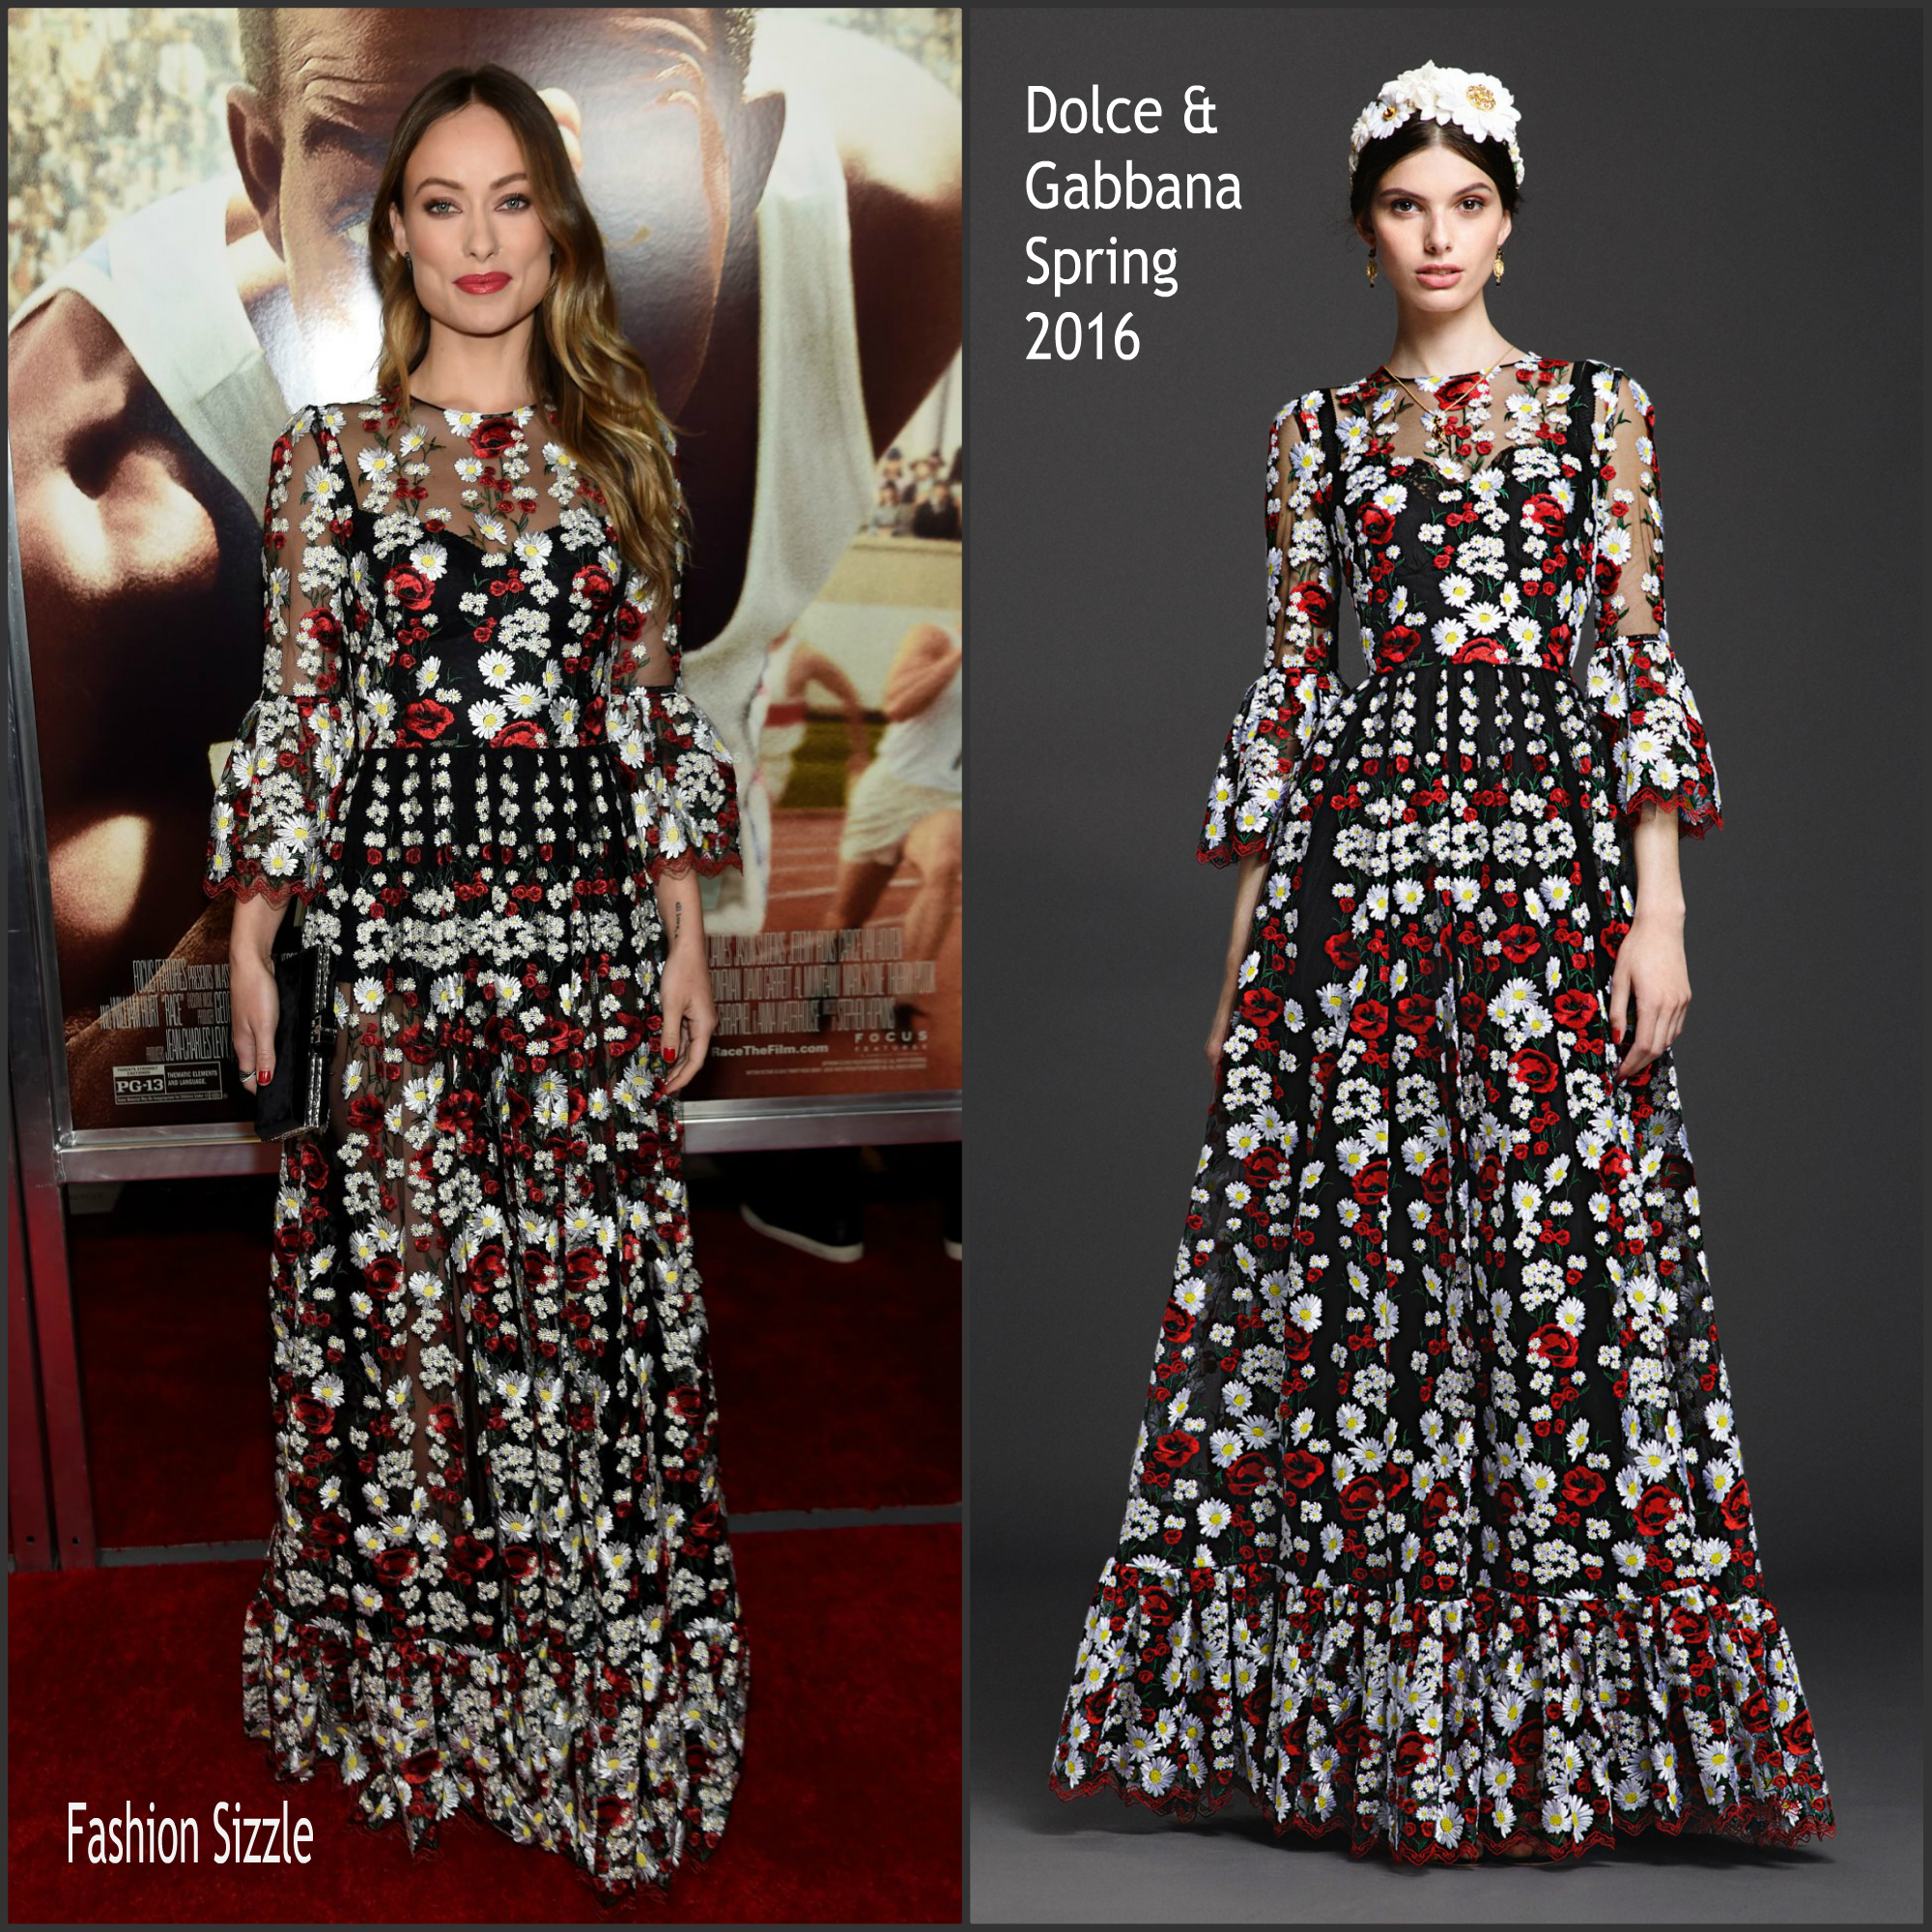 olivia-wilde-in-dolce0-gabbana-race-new-york-screening